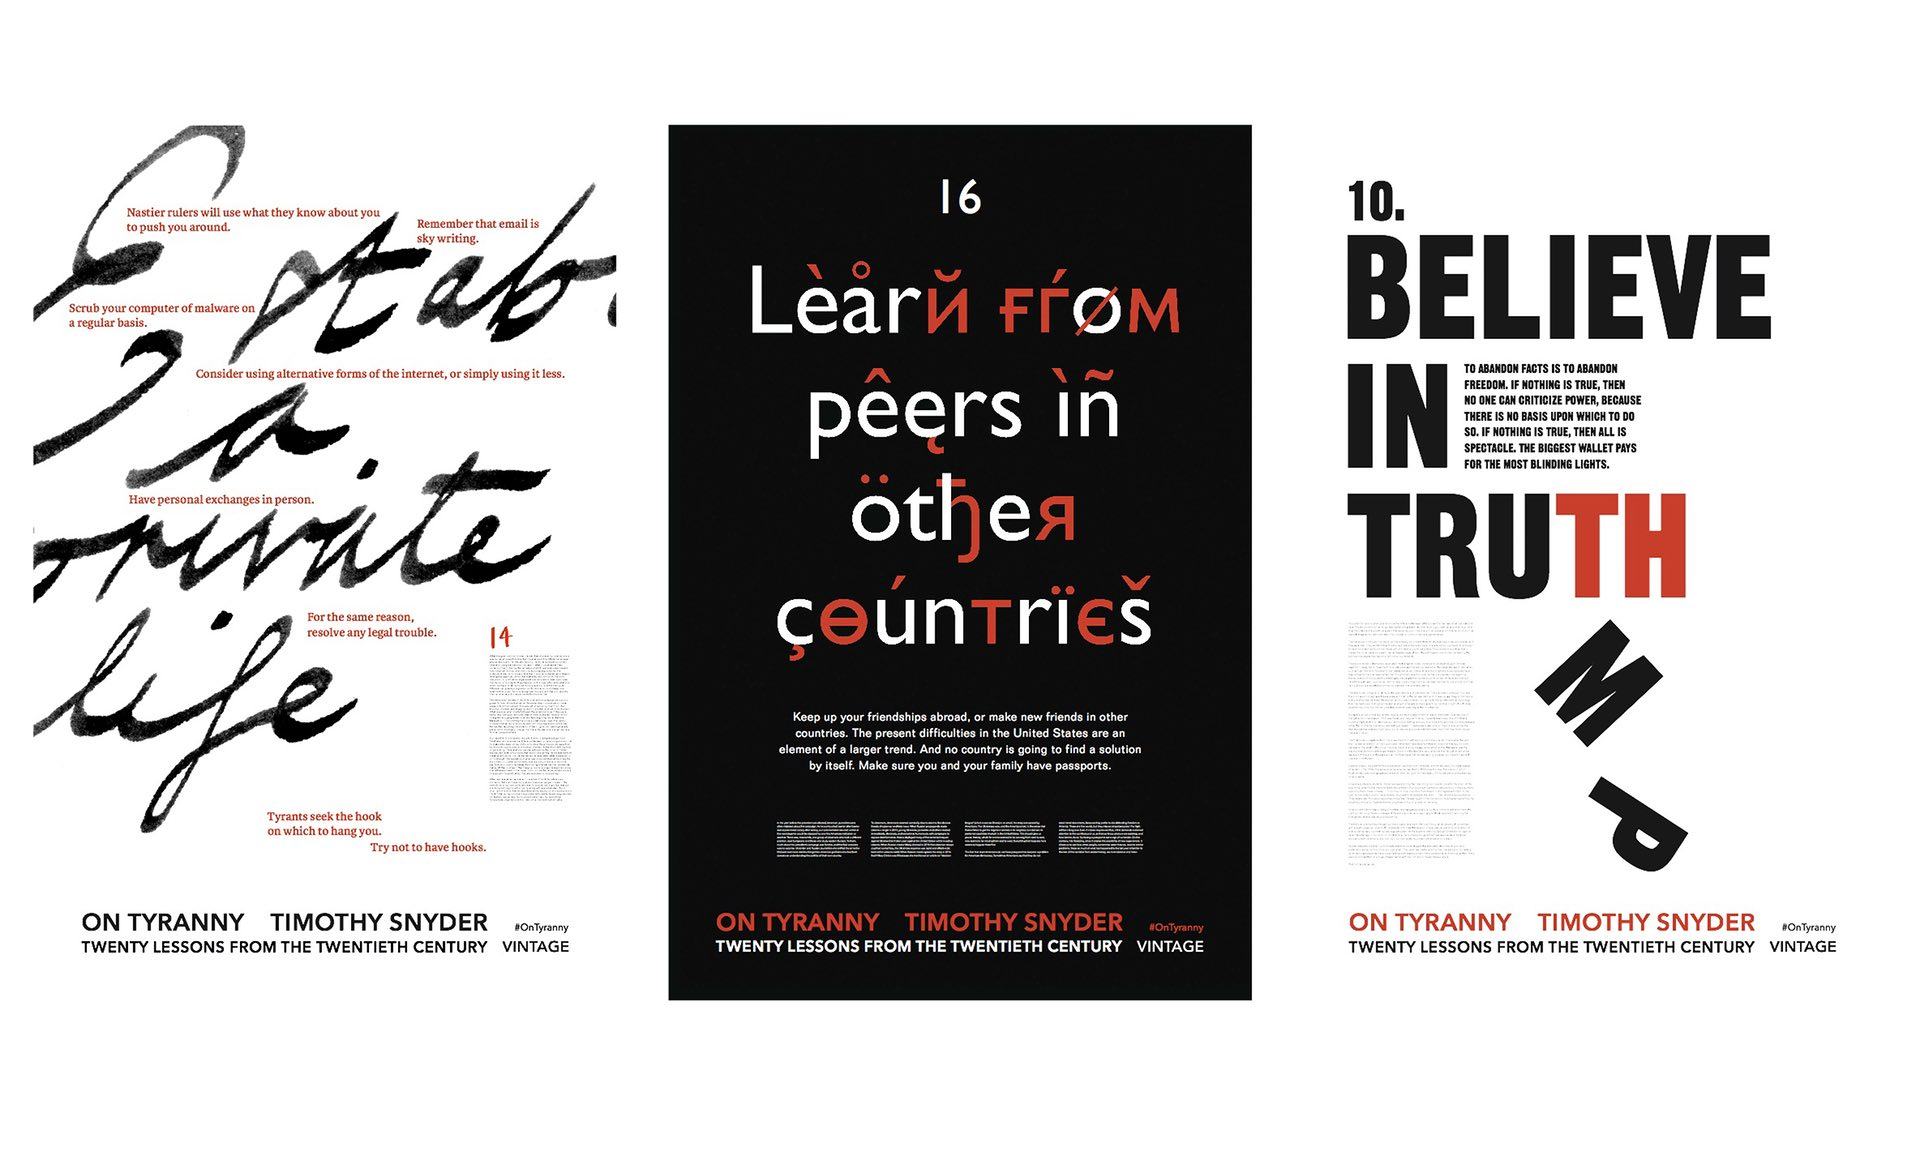 Timothy Snyder's manifesto for resisting tyranny hits the streets of London